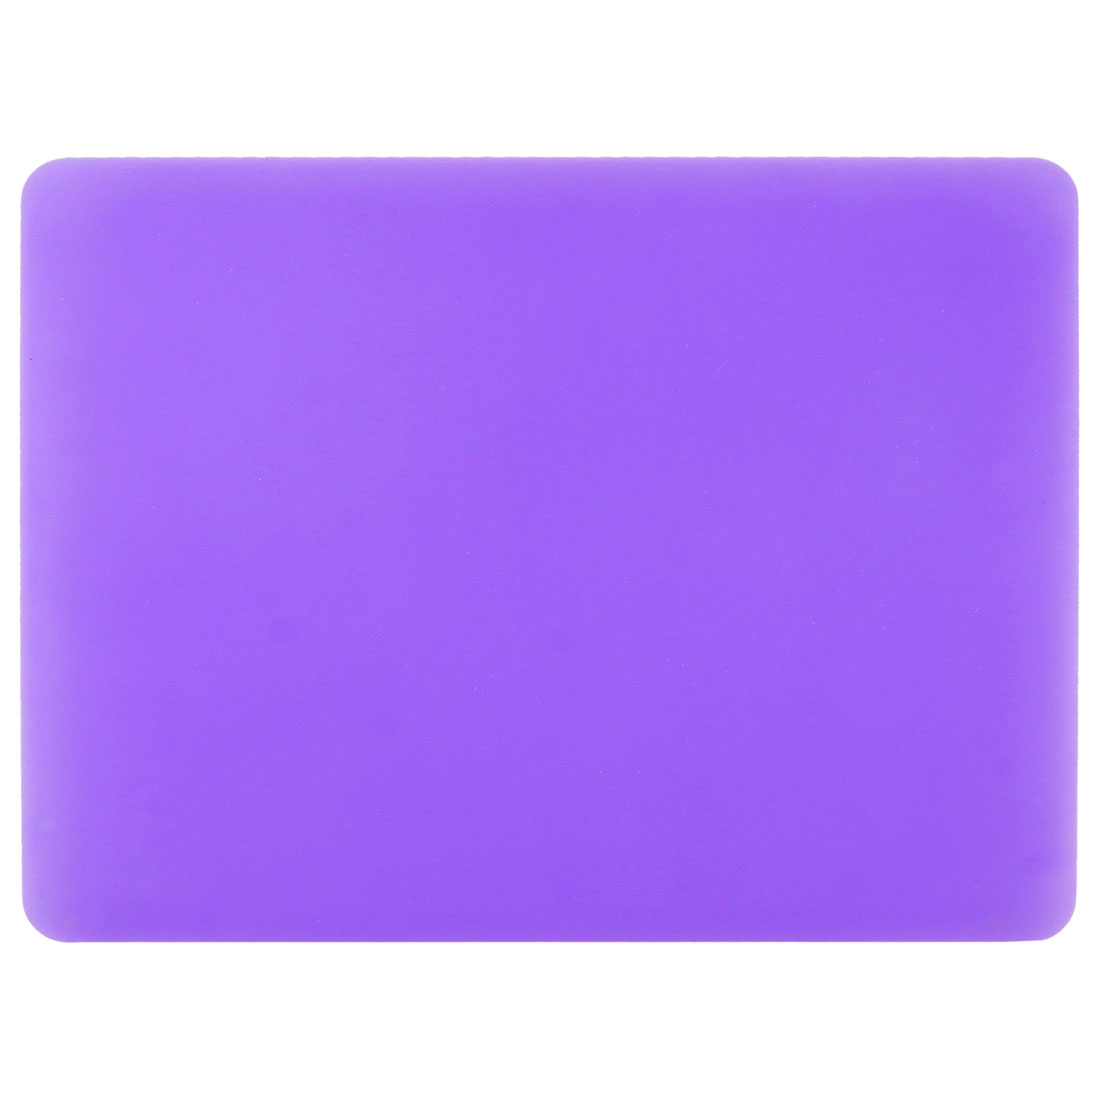 "9"" x 7.5"" Rectangle Nonslip Soft Silicone Purple Mouse Pad for PC Computer"